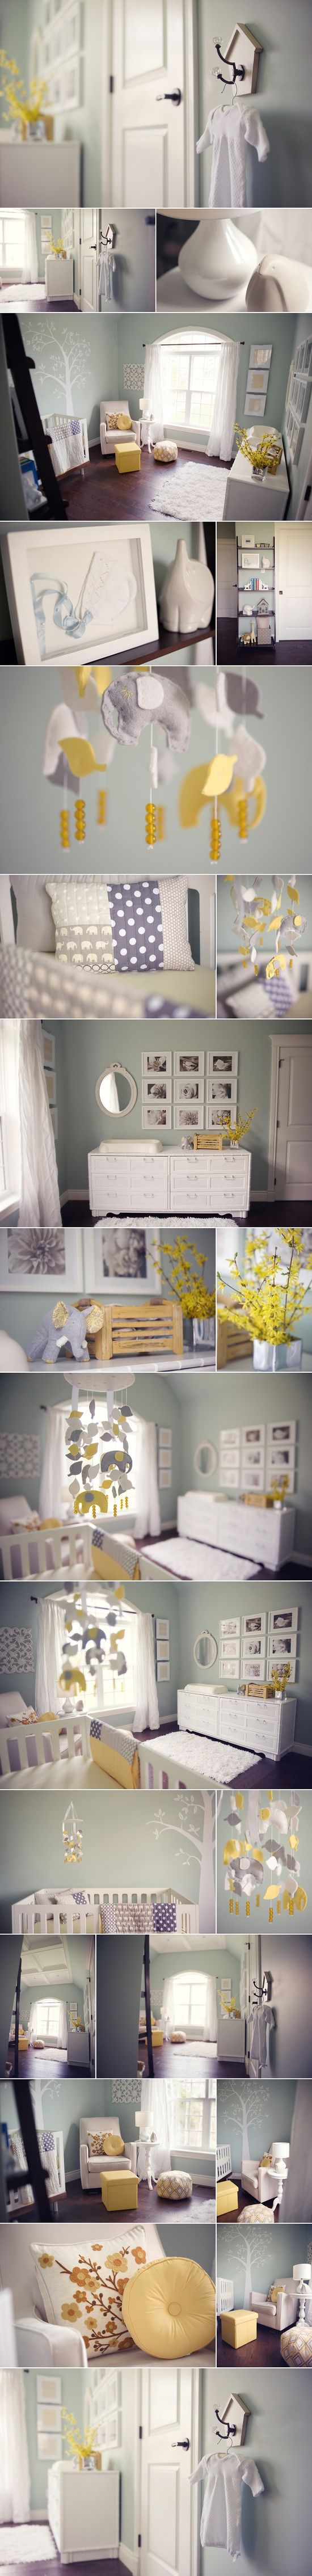 Seriously soothing color palette. Substitute turquoise for the yellow.